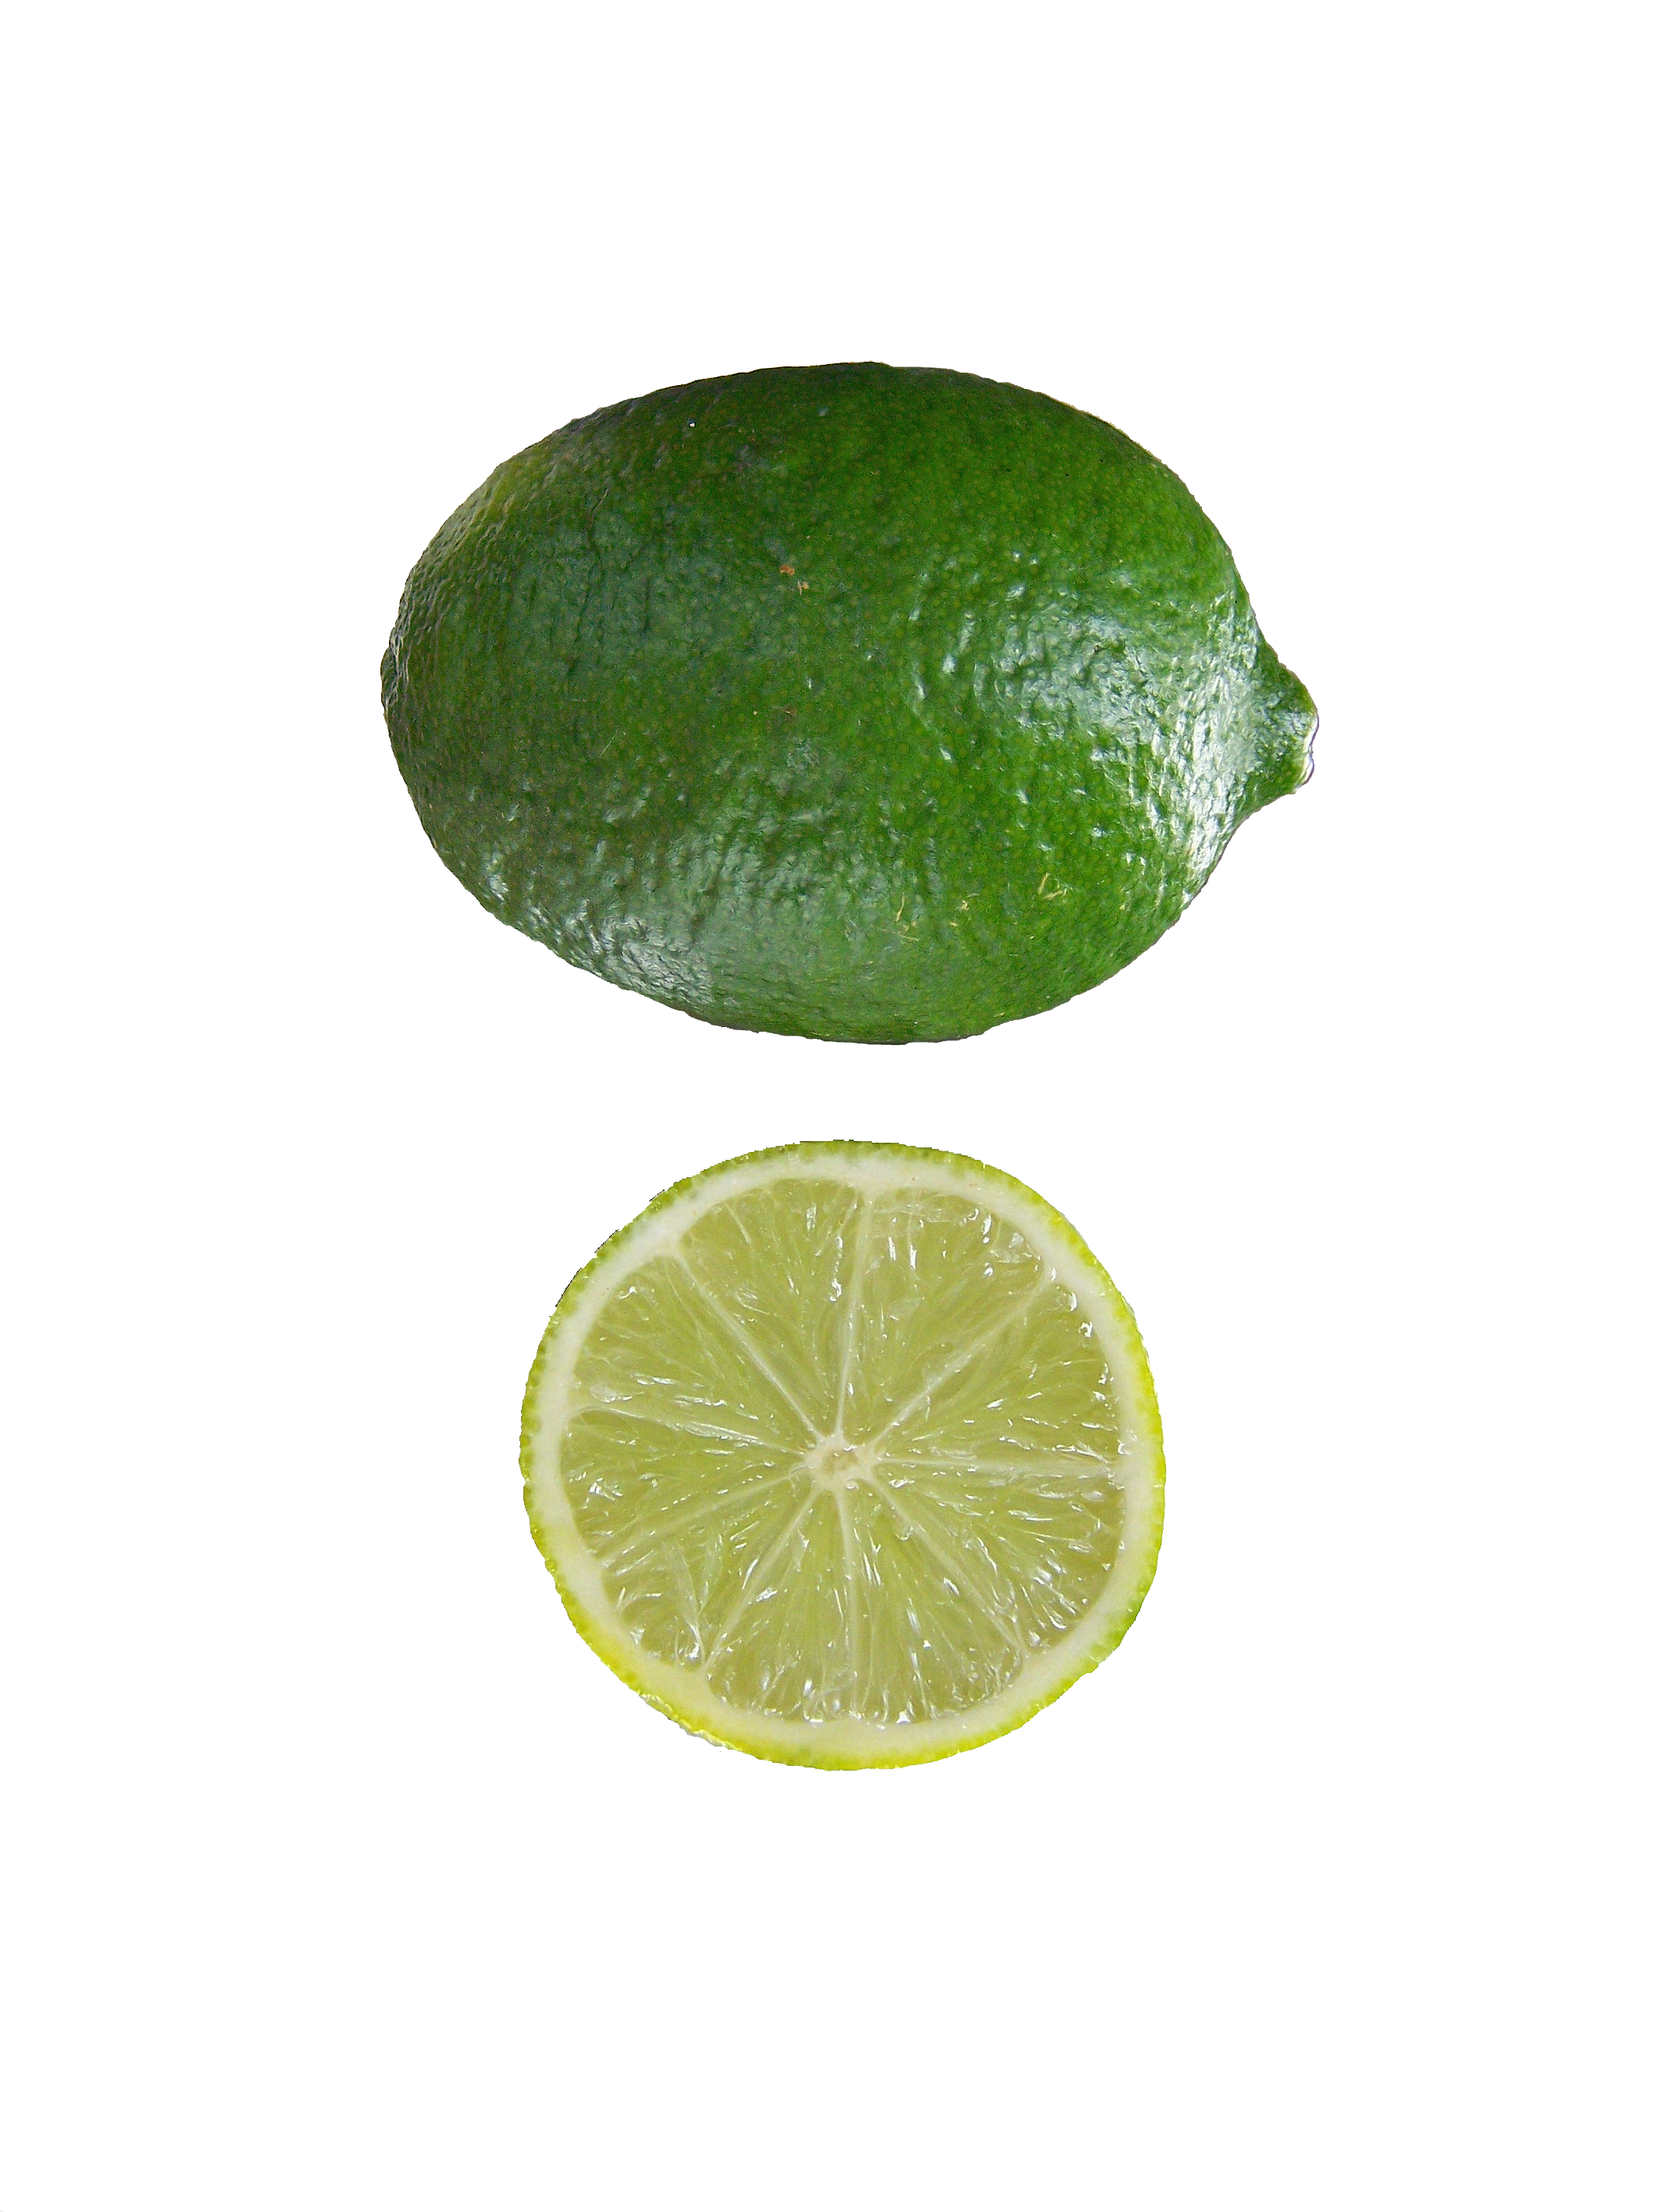 File:Citrus aurantifolia Mexican Lime.png - Wikipedia, the free ...